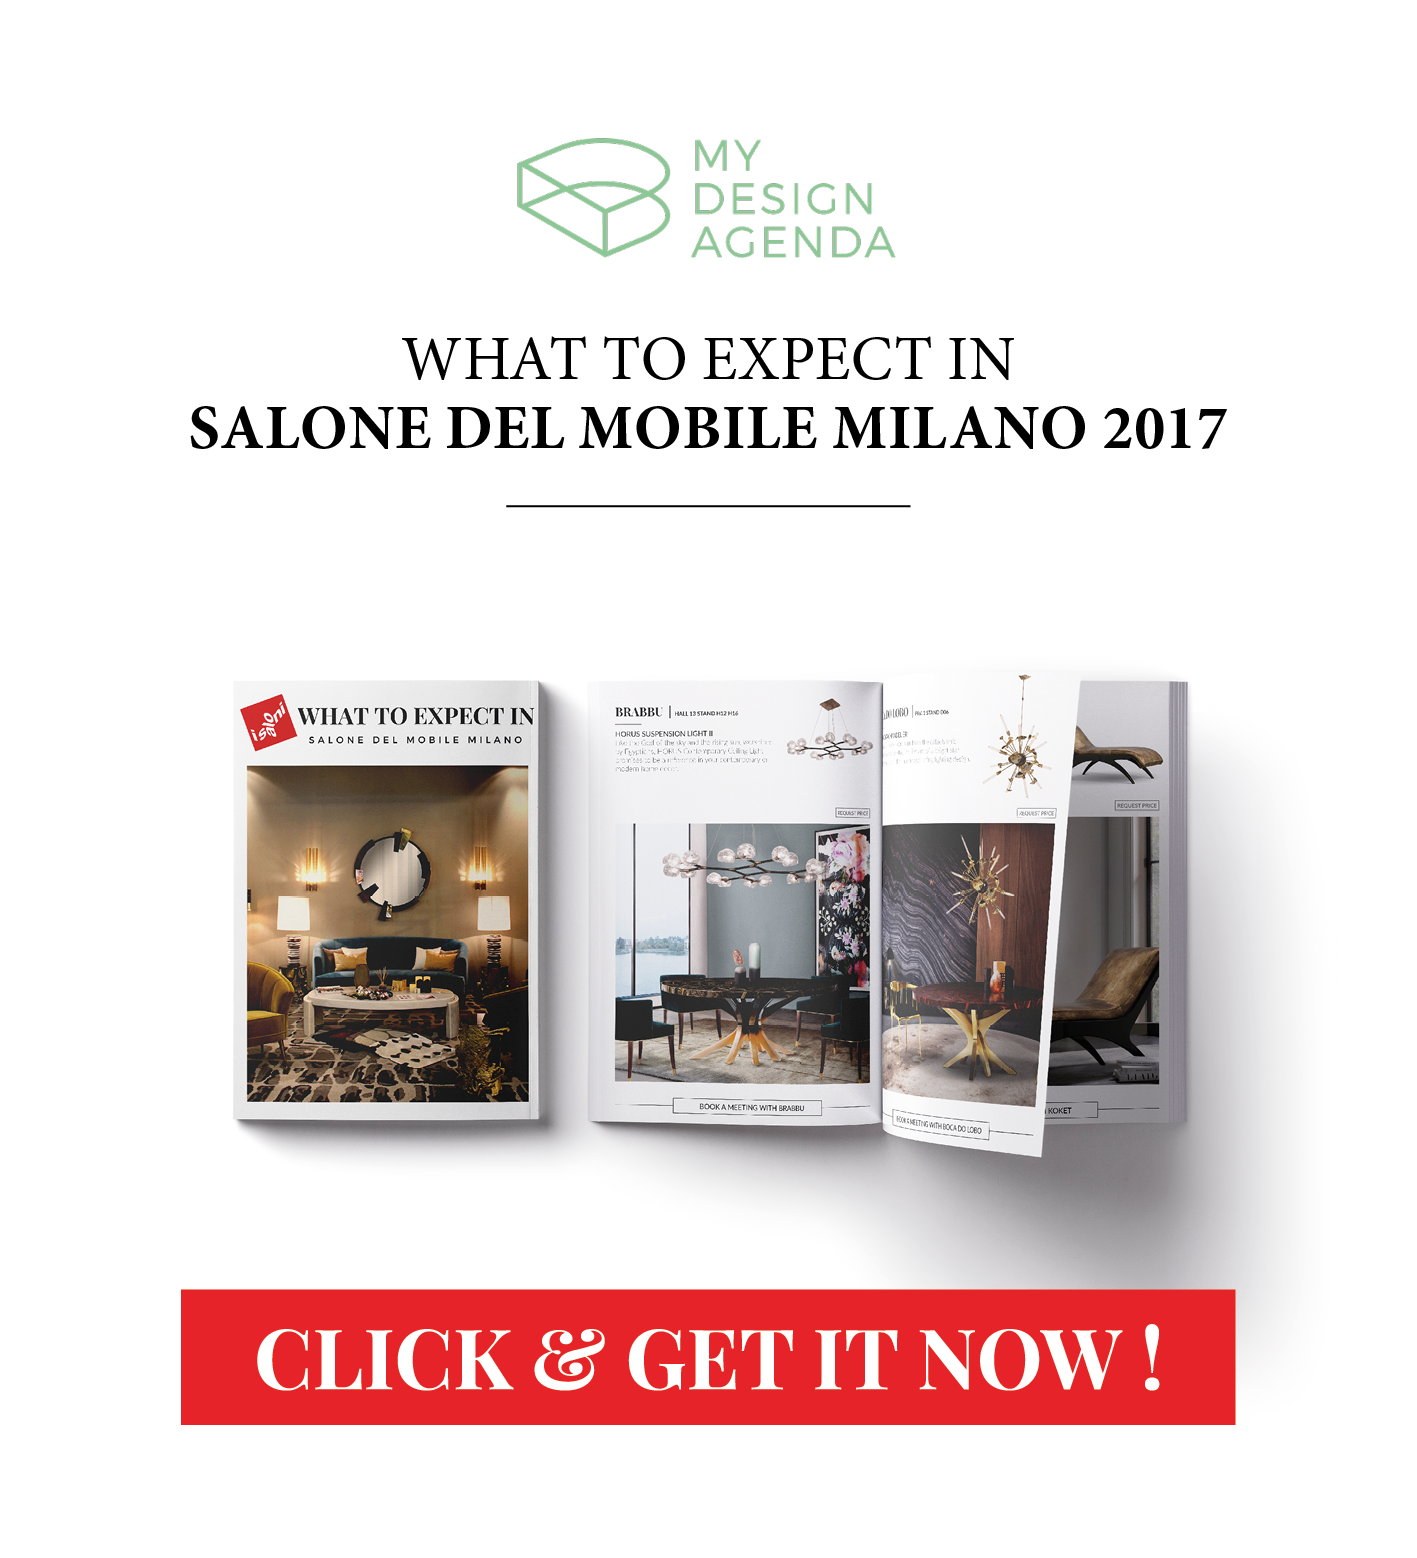 The best of salone del mobile milano 2017 - Salone del mobile 2017 biglietti ...